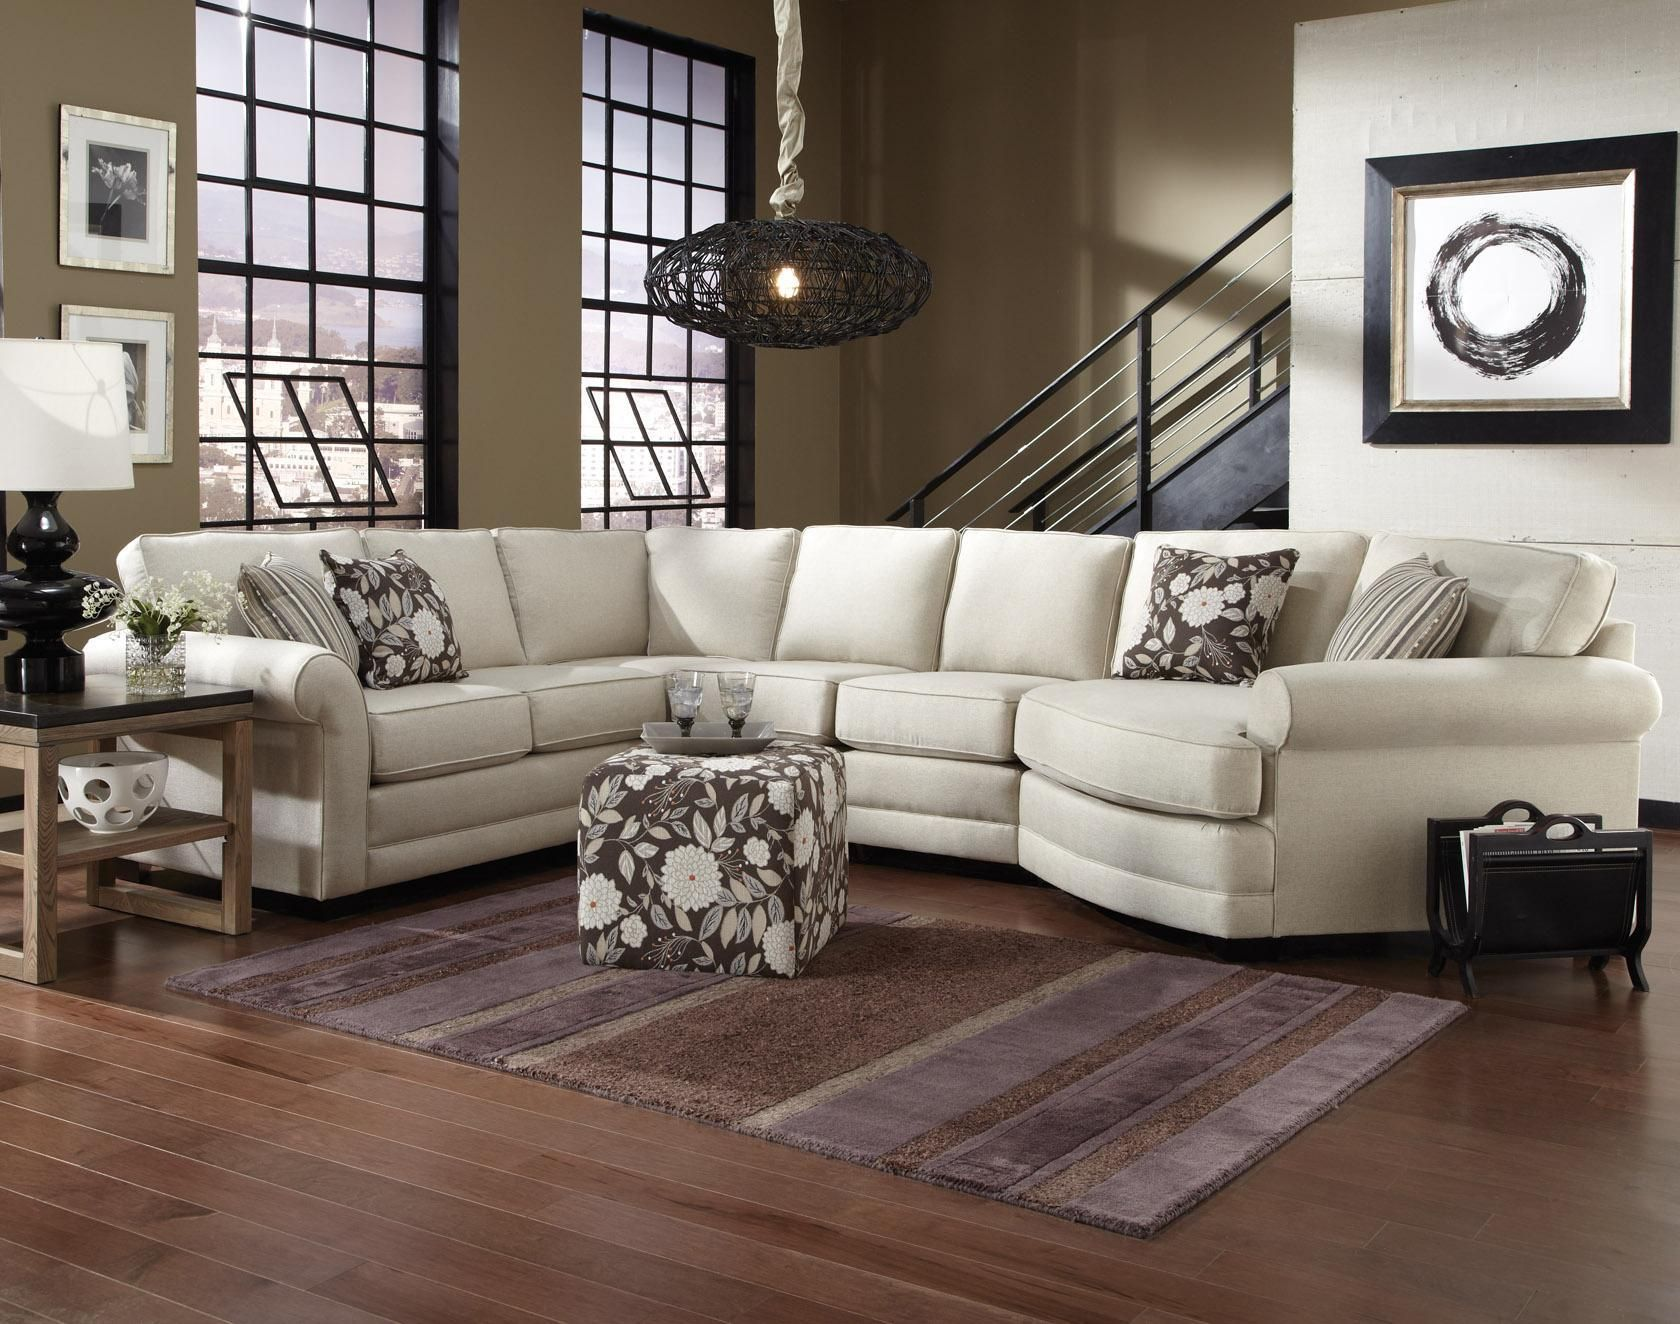 Furniture Sale Stores In Colders – healthynails.co